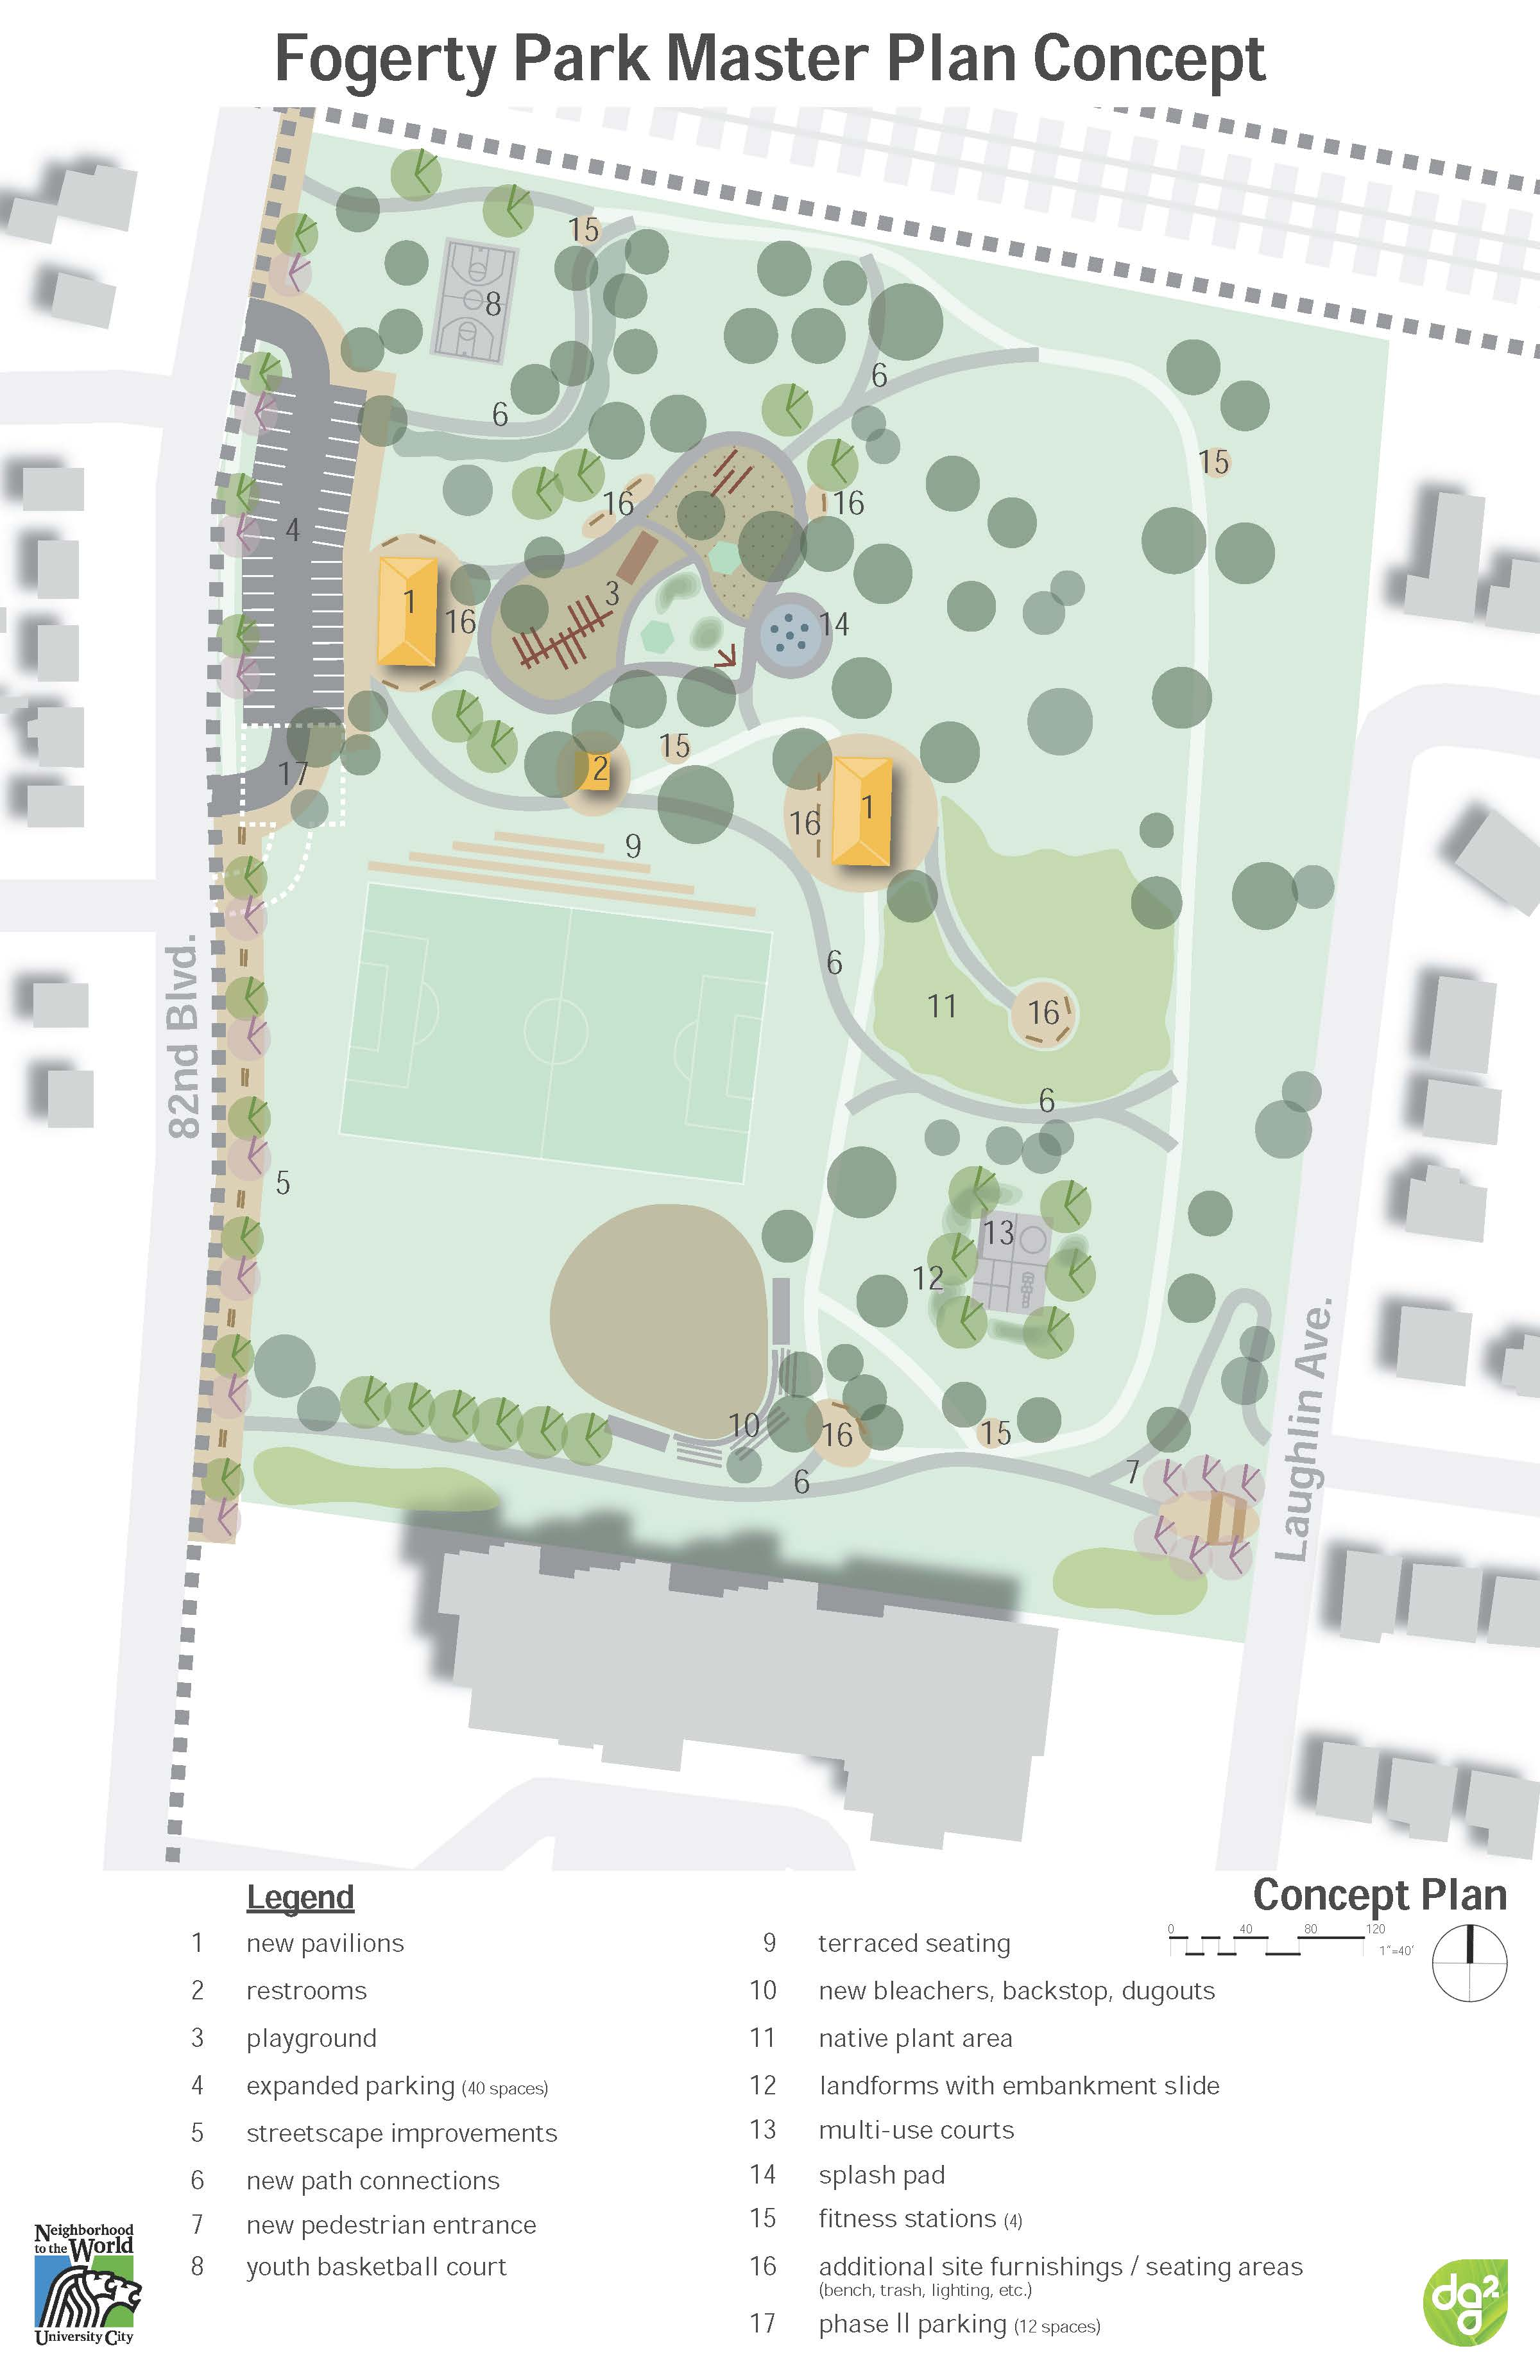 150716_Fogerty Park Final Master Plan Concept.jpg